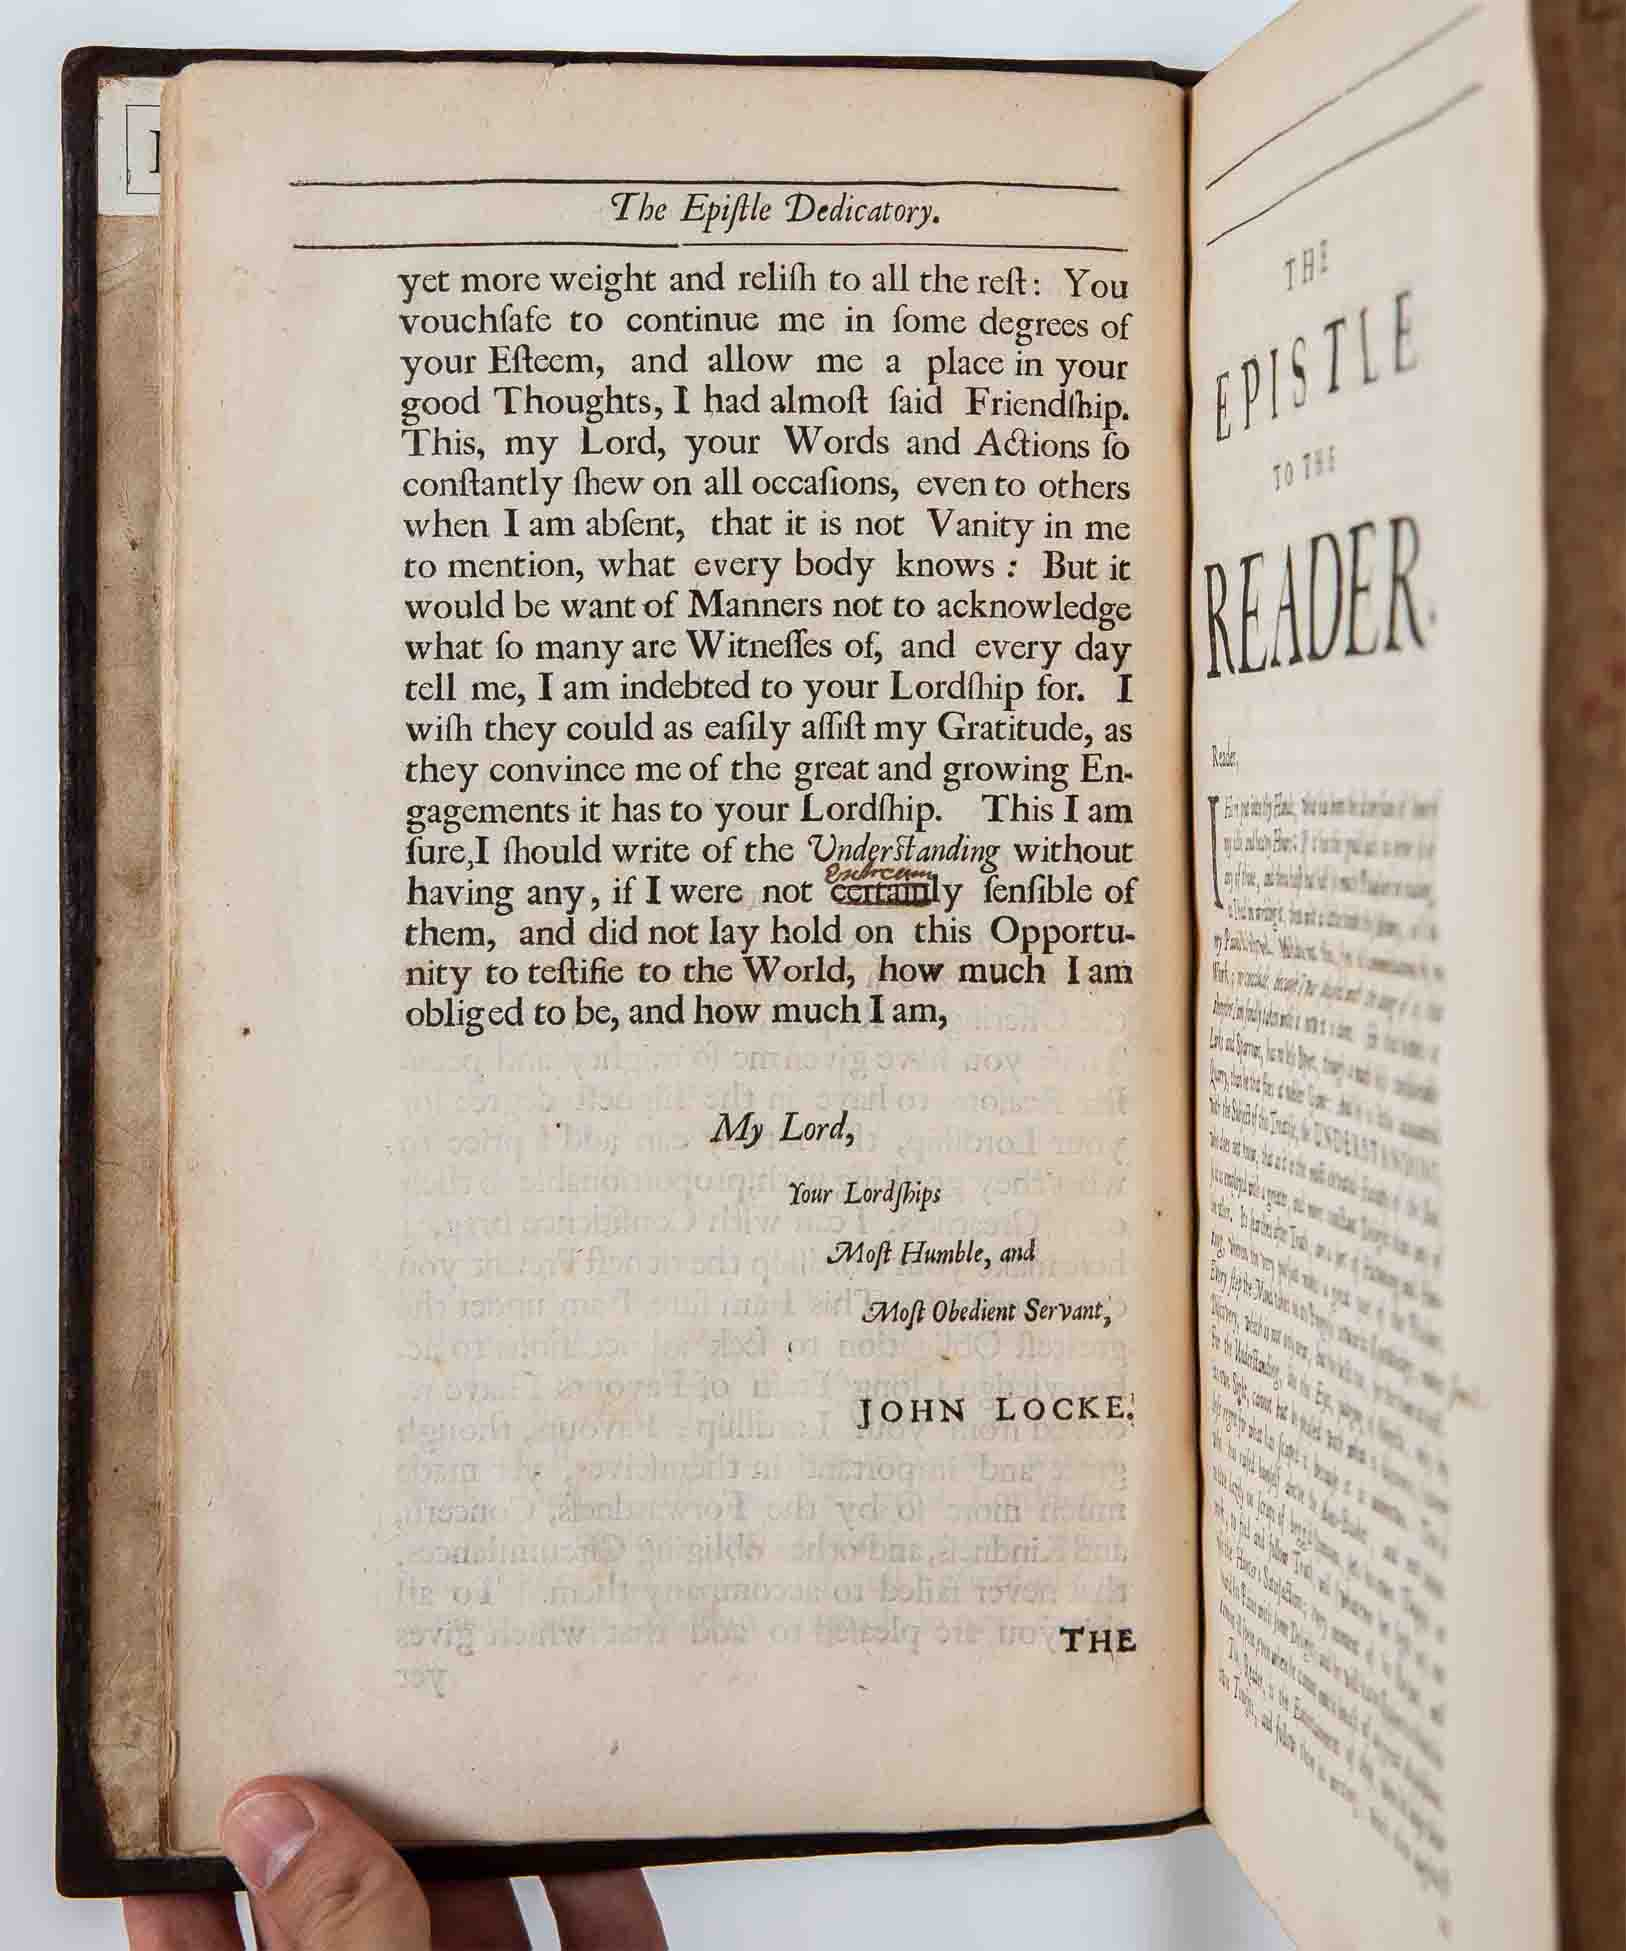 john lockes essay concerning human understanding John locke, \of identity and diversity chapter xxvii of an essay concerning human understanding, 2nd ed available on project gutenberg.